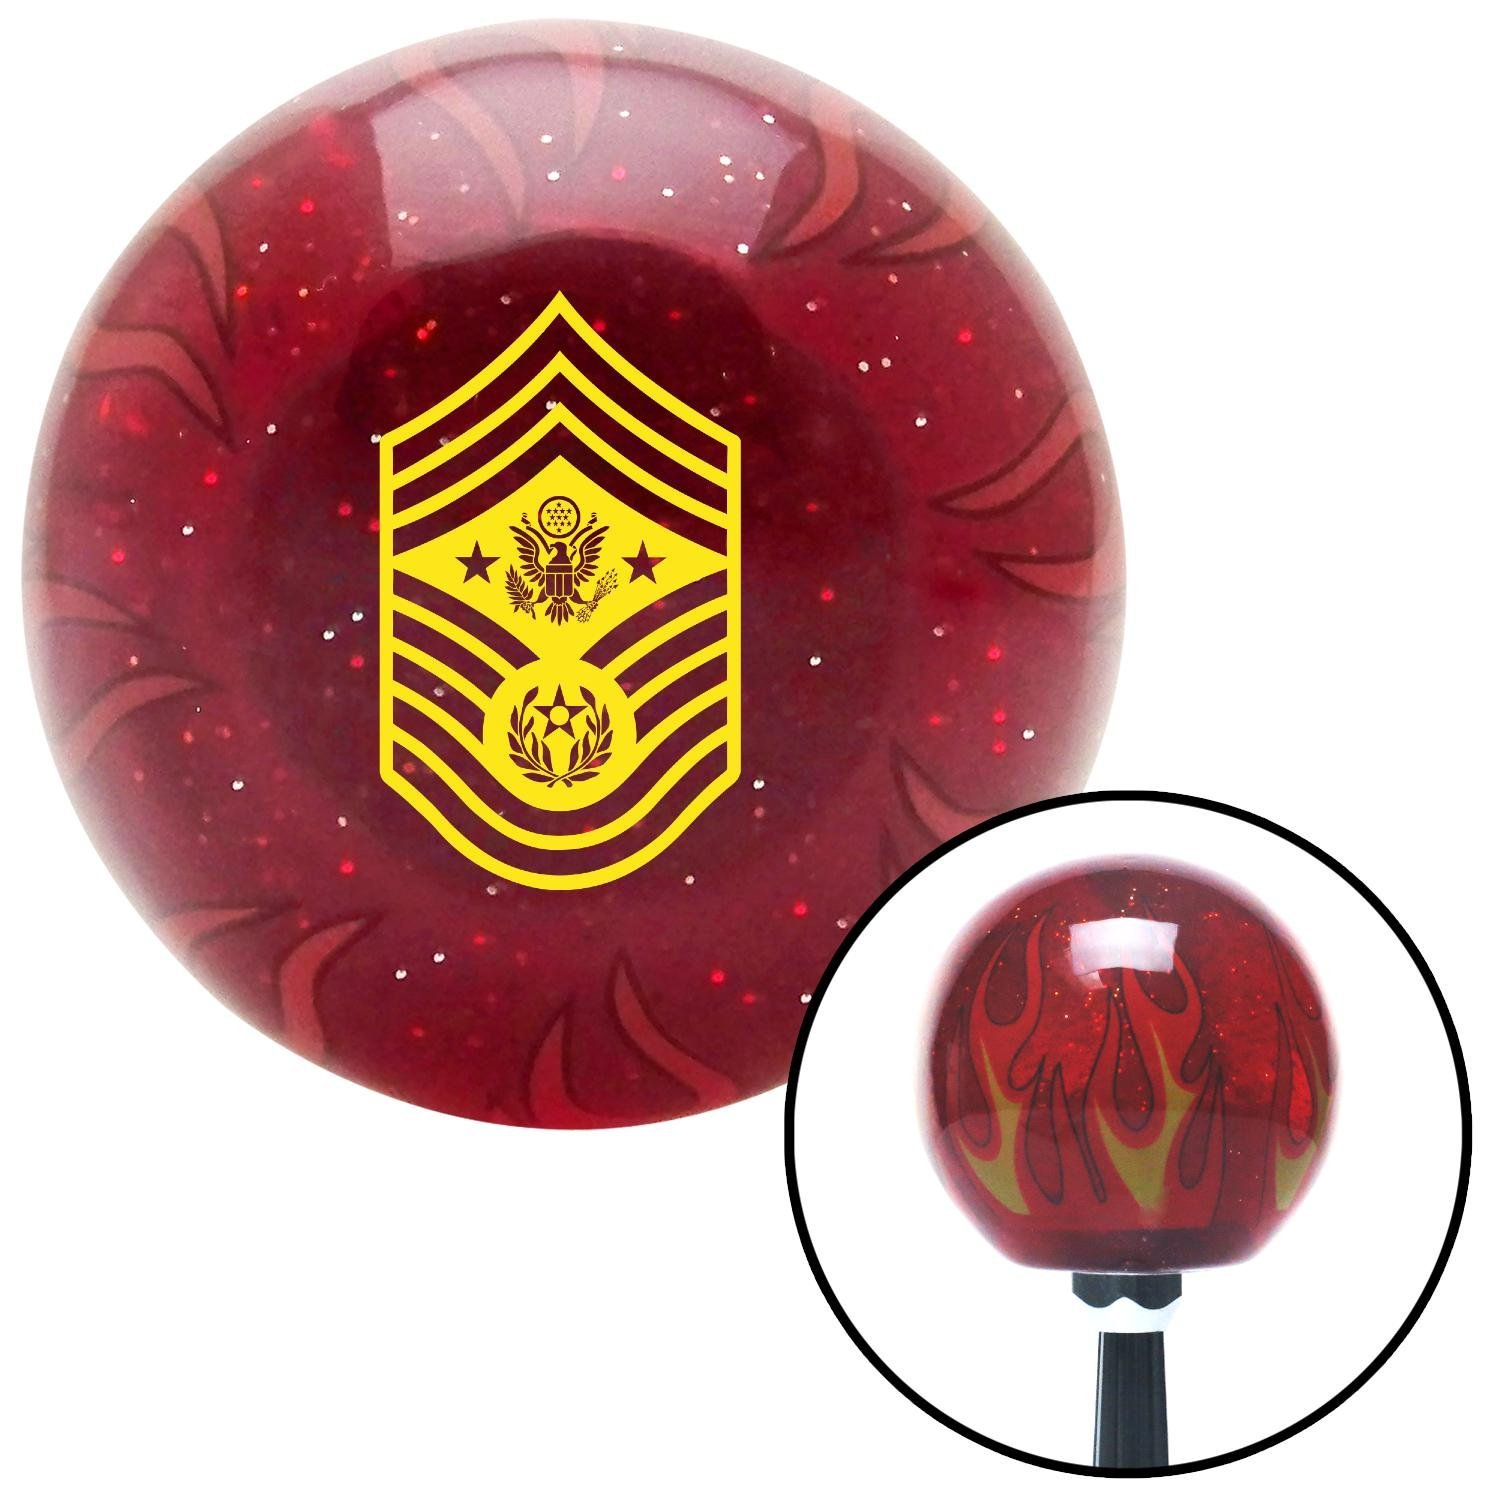 American Shifter 262729 Green Flame Metal Flake Shift Knob with M16 x 1.5 Insert Yellow Chief Master Sergeant of The Air Force